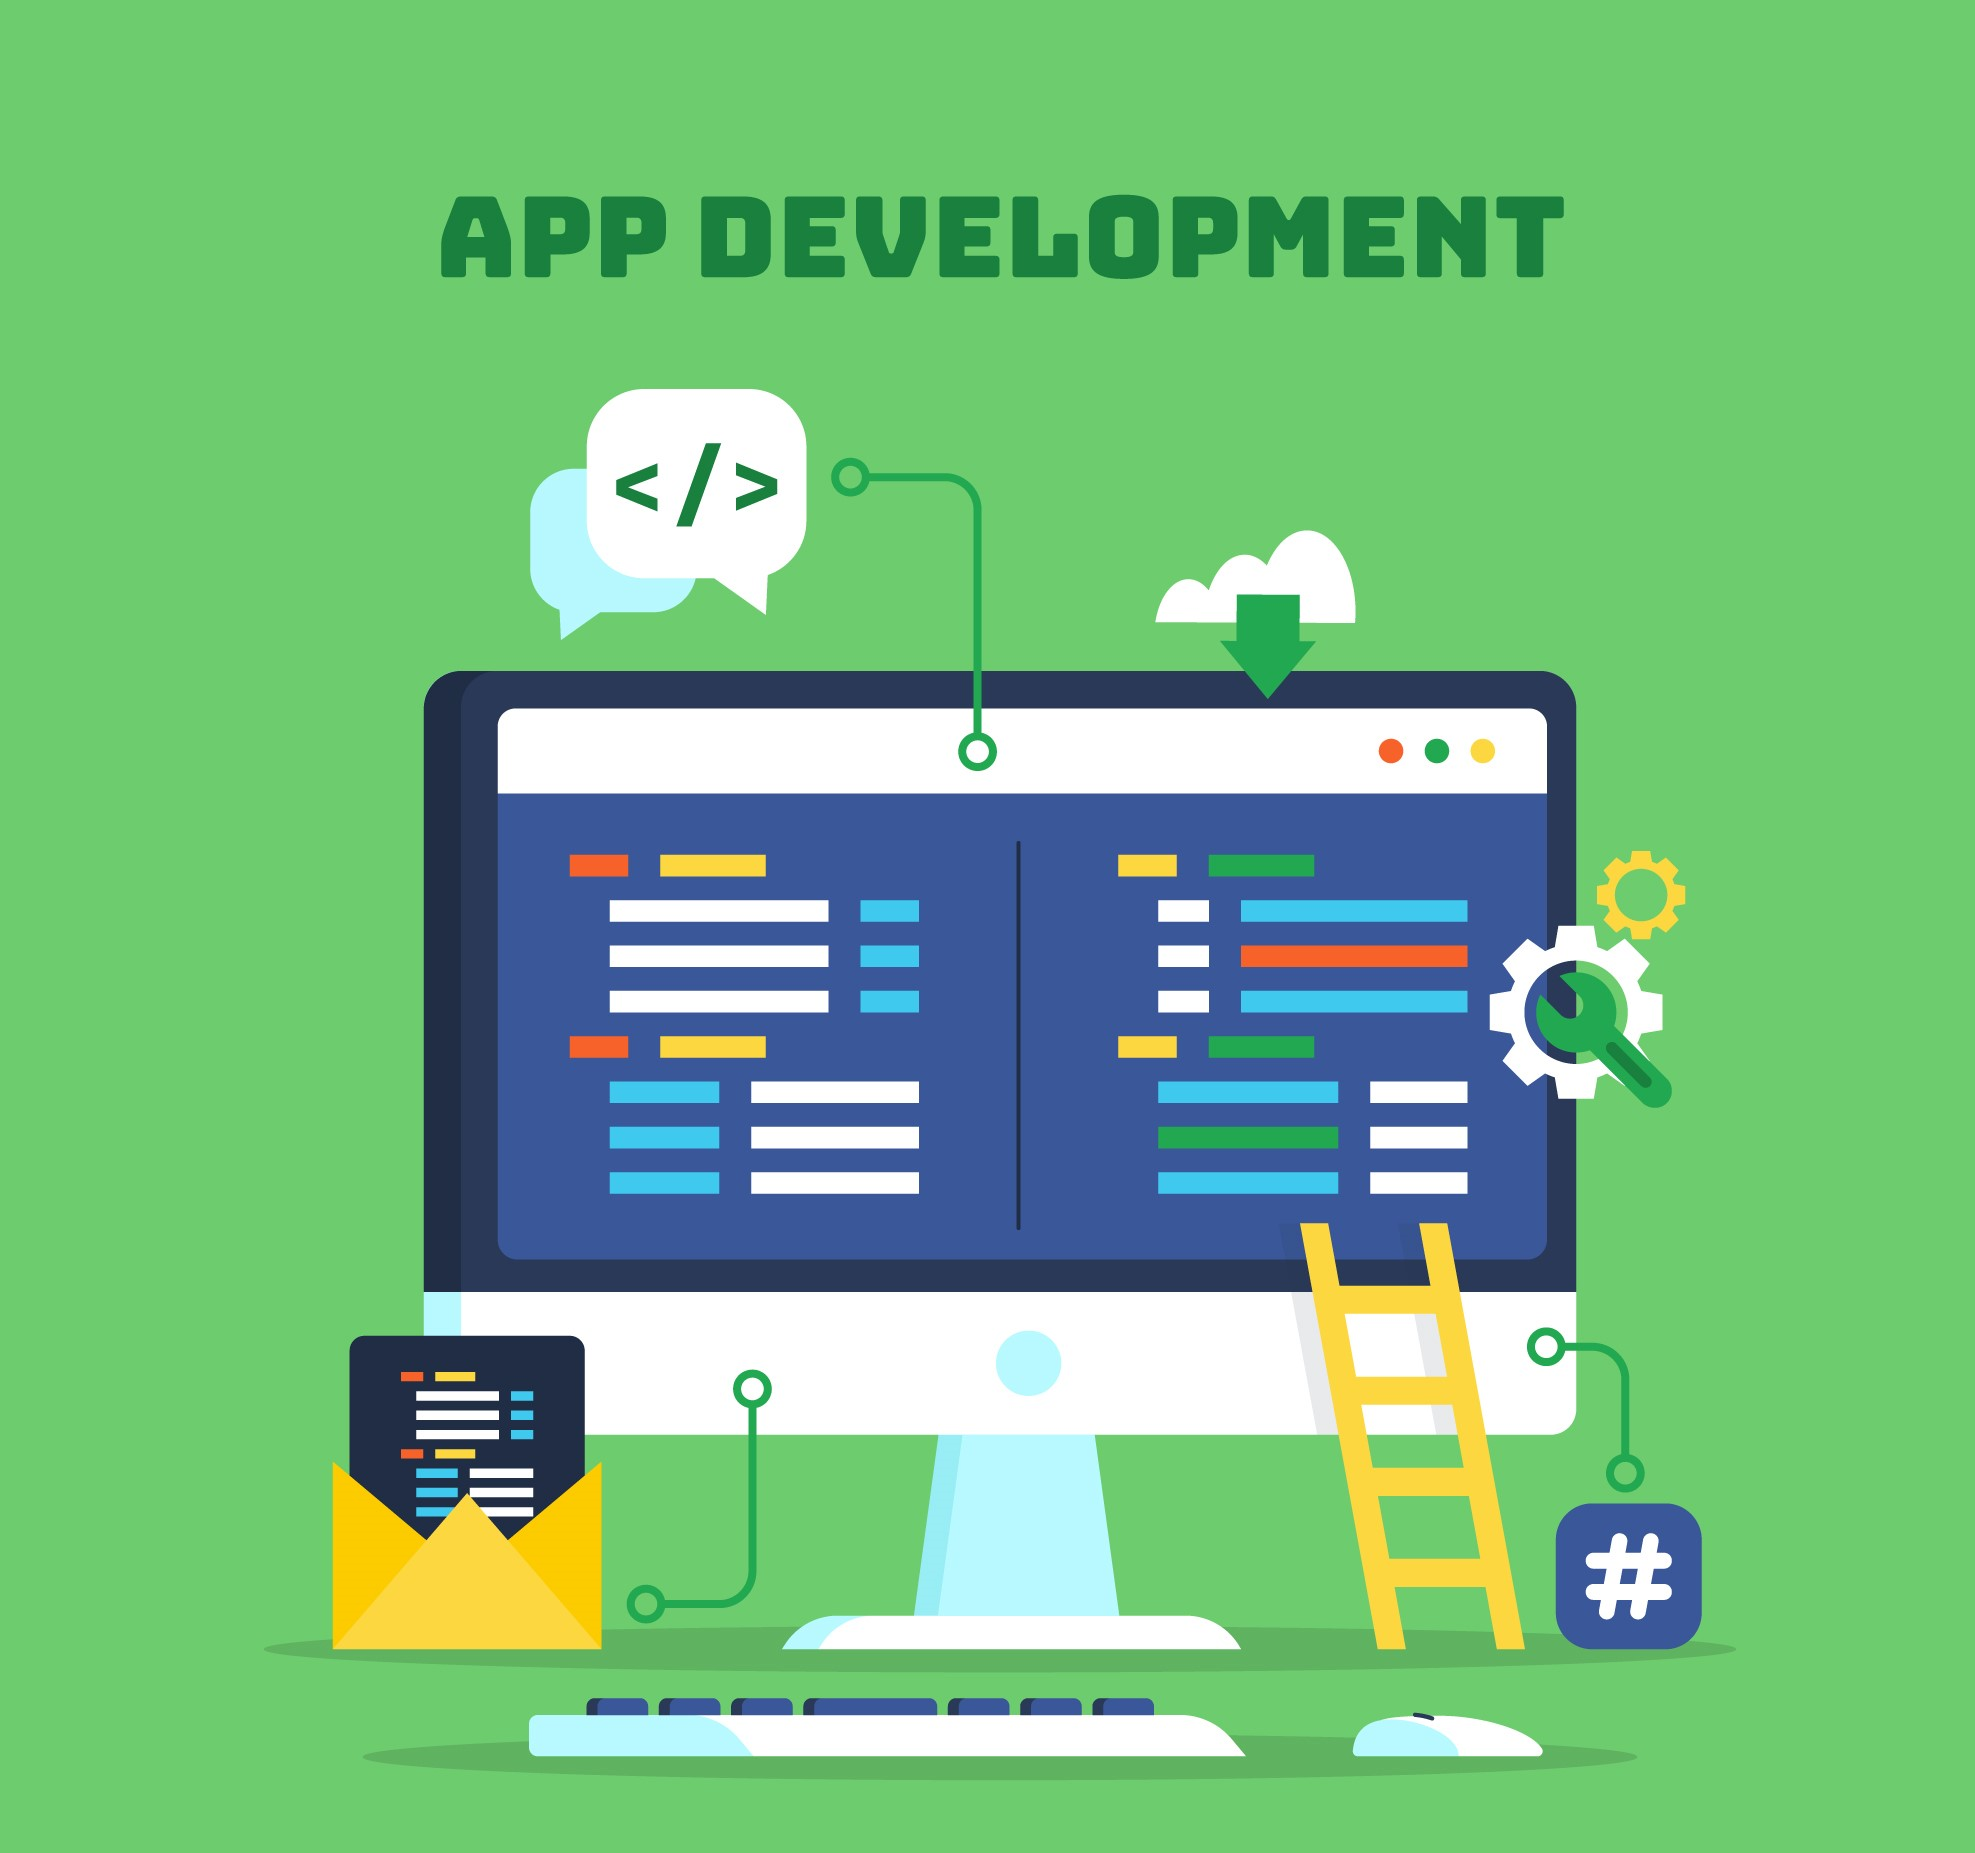 Enterprise app development challenges and best practices to overcome them?